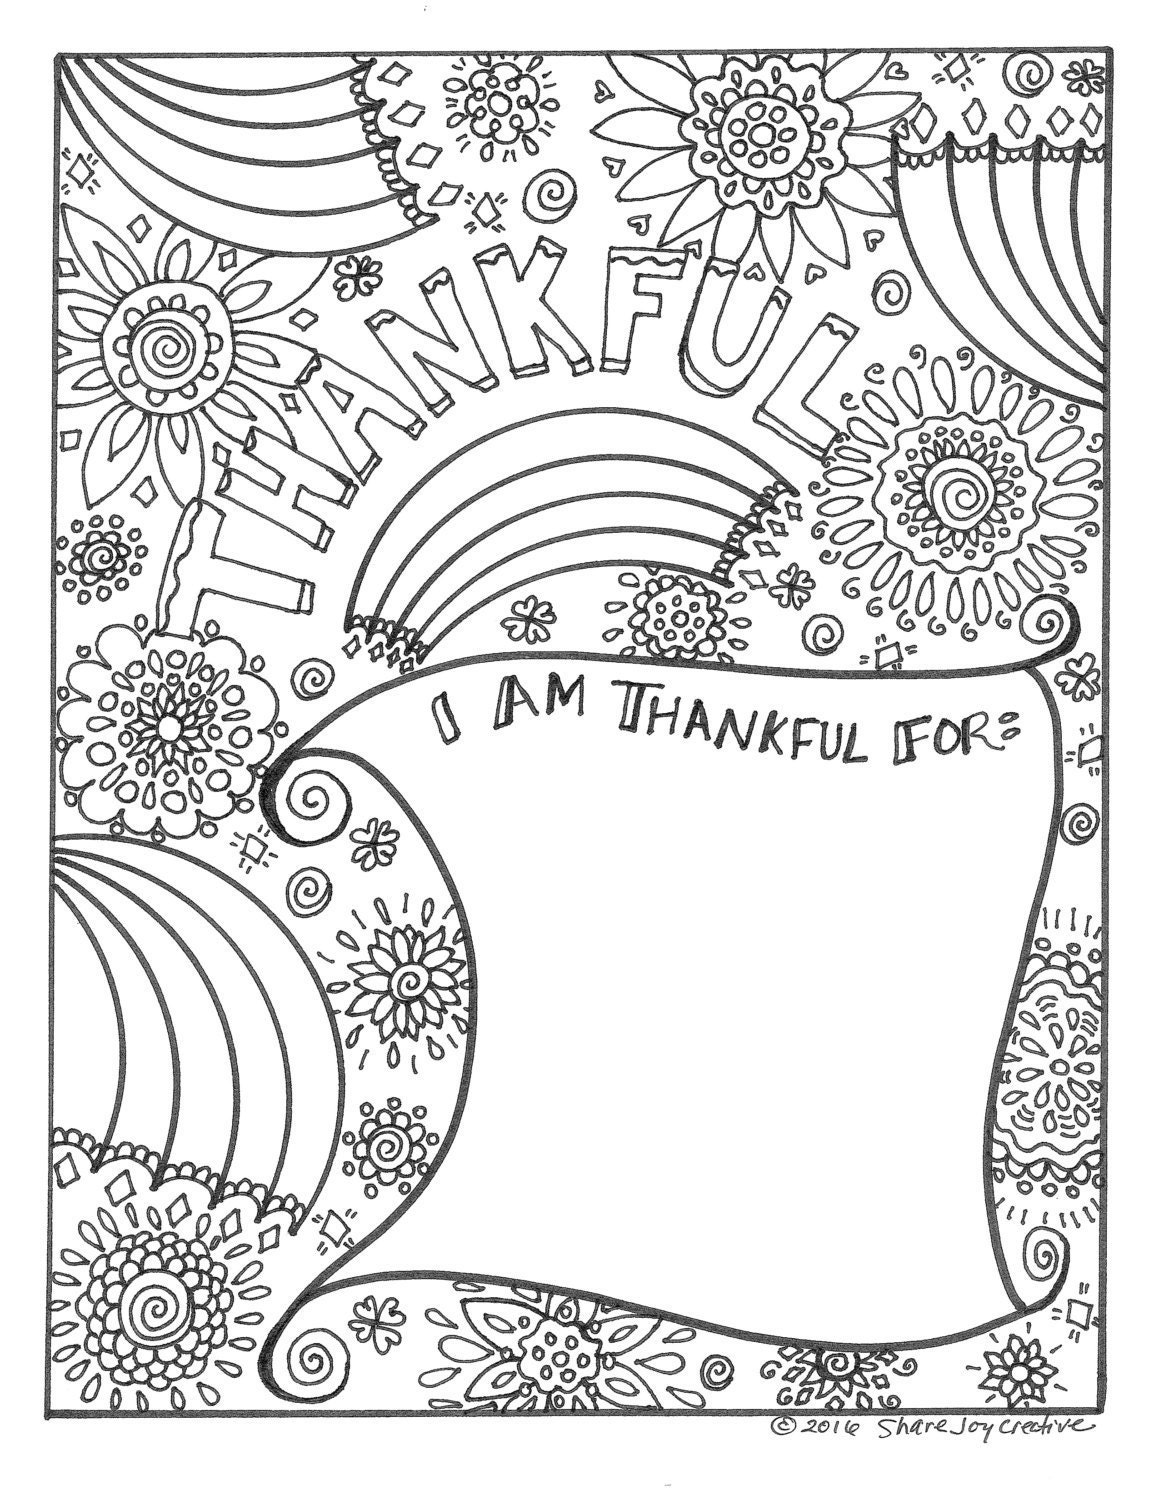 grateful coloring pages - photo#12